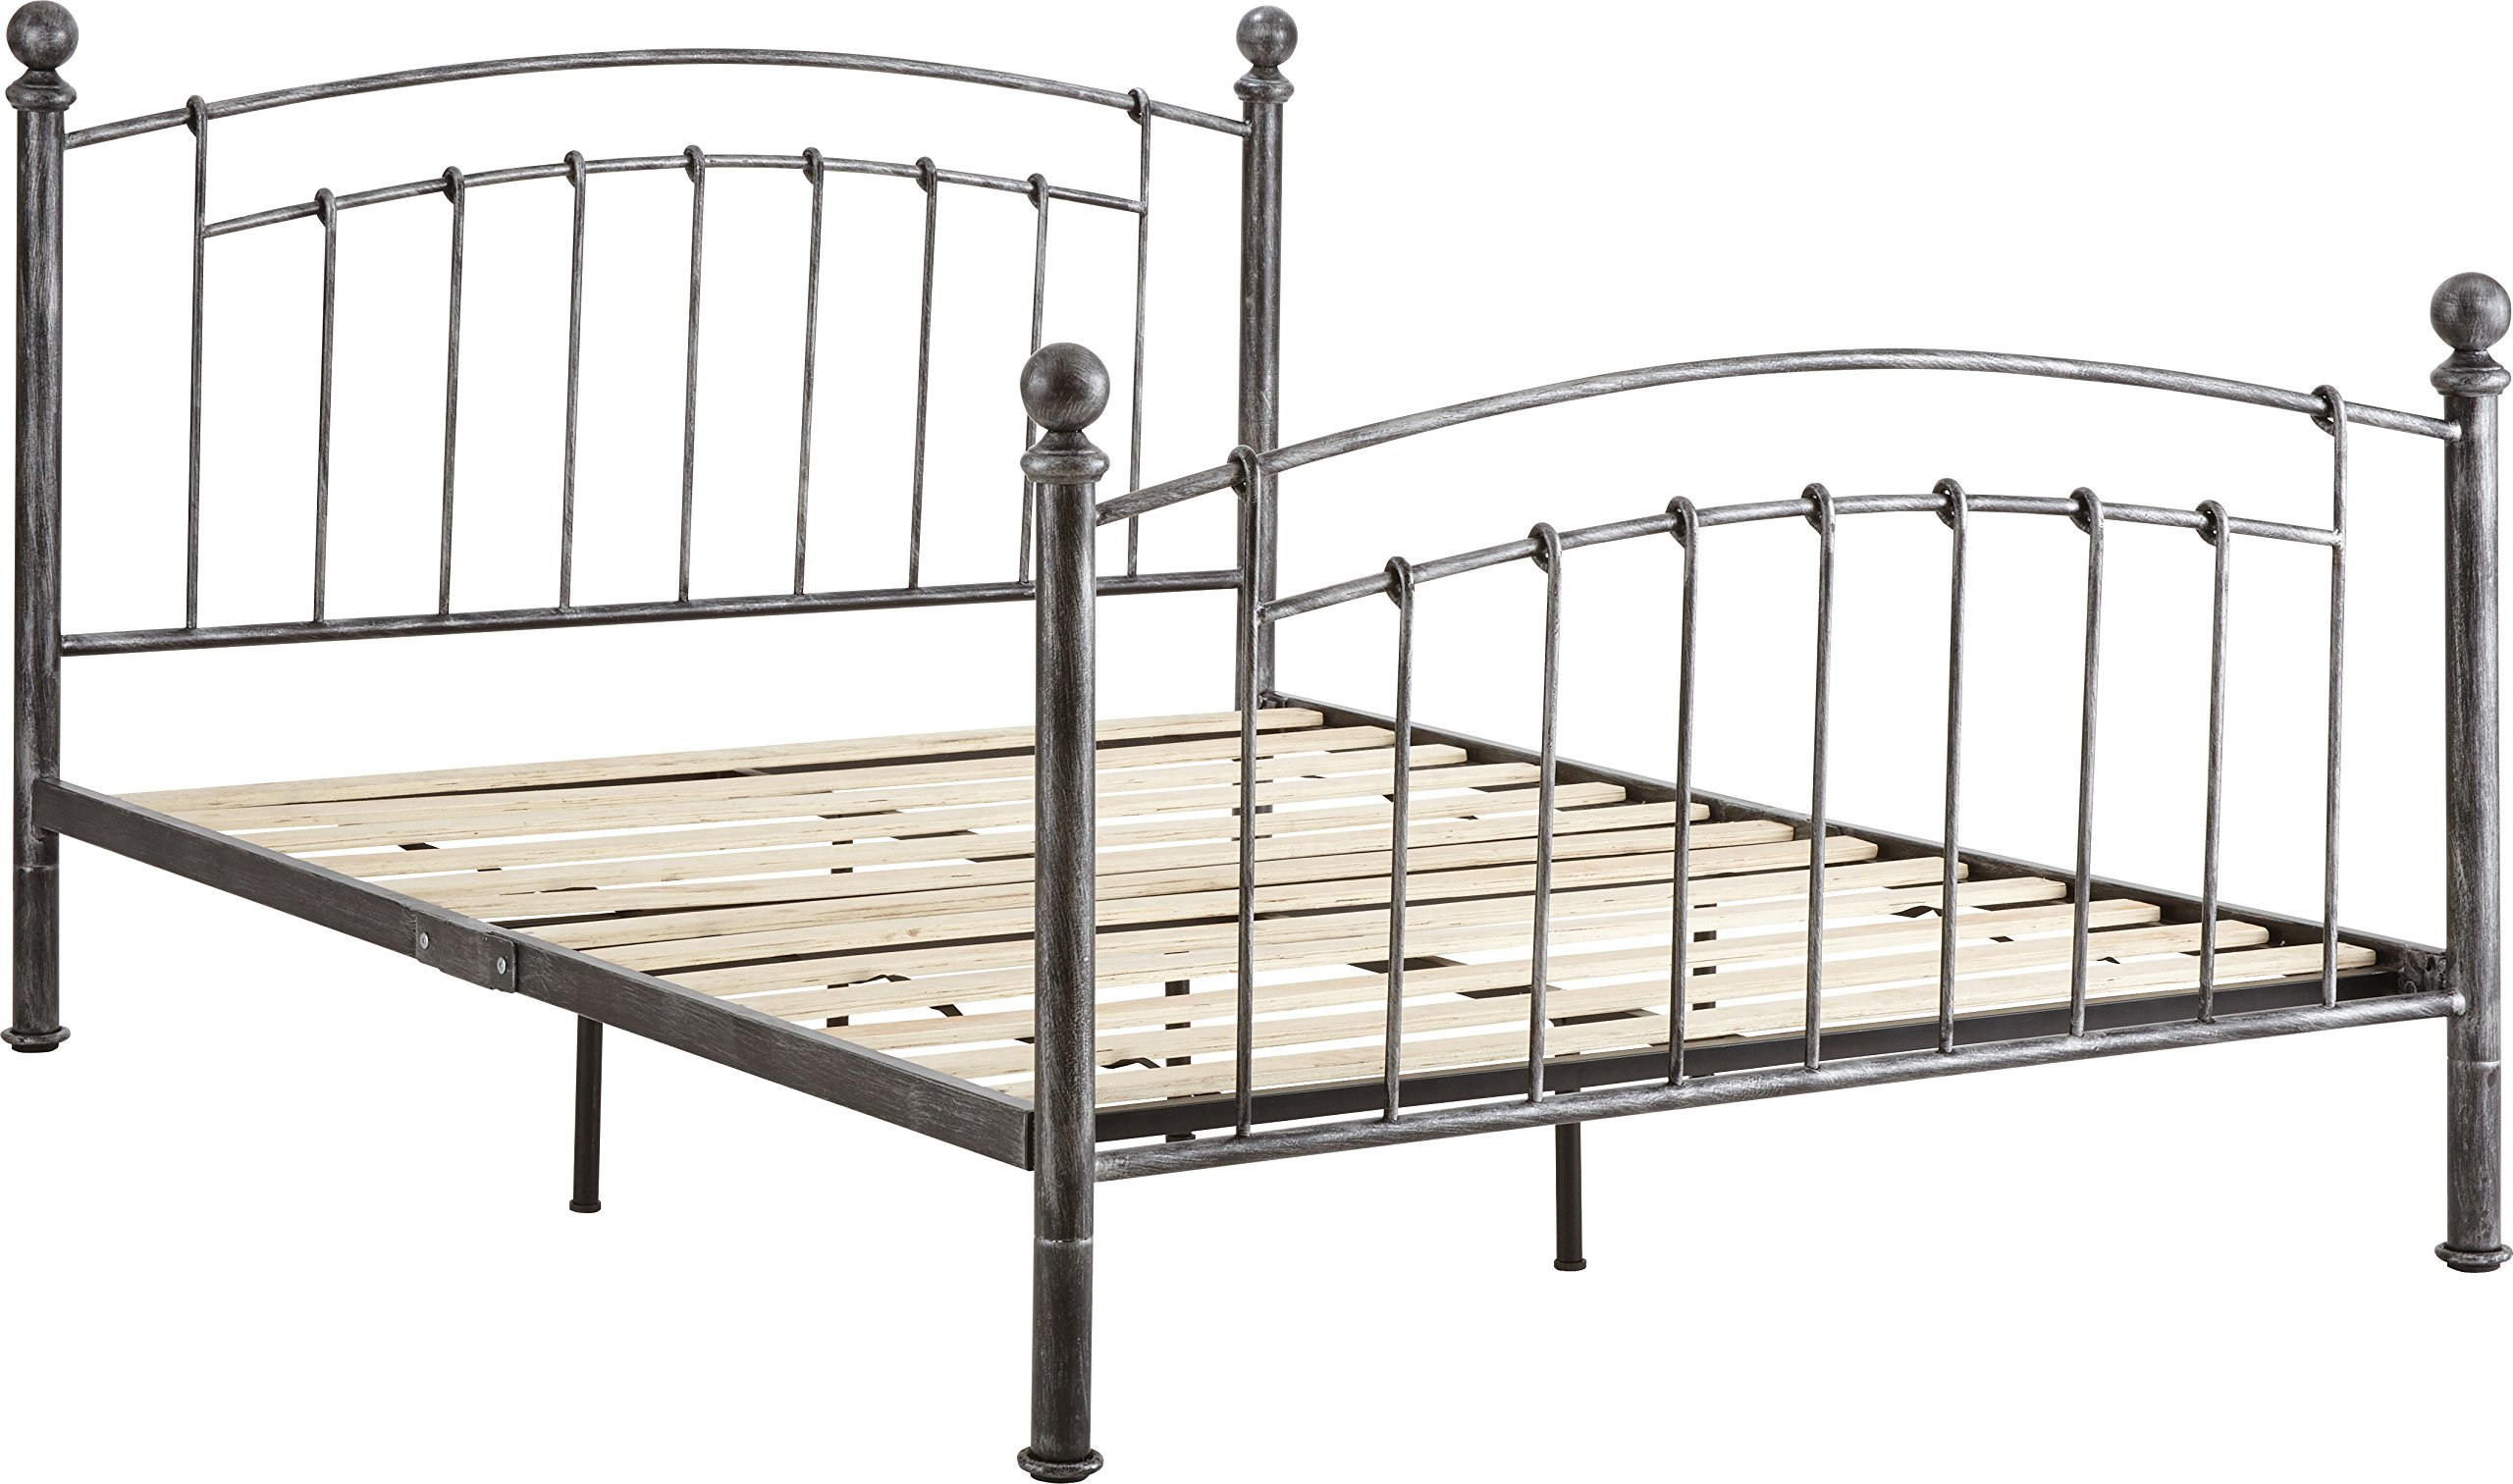 Flex Form Chandler Metal Platform Bed Frame / Mattress Foundation with Headboard and Footboard, Queen by Flex Form (Image #1)